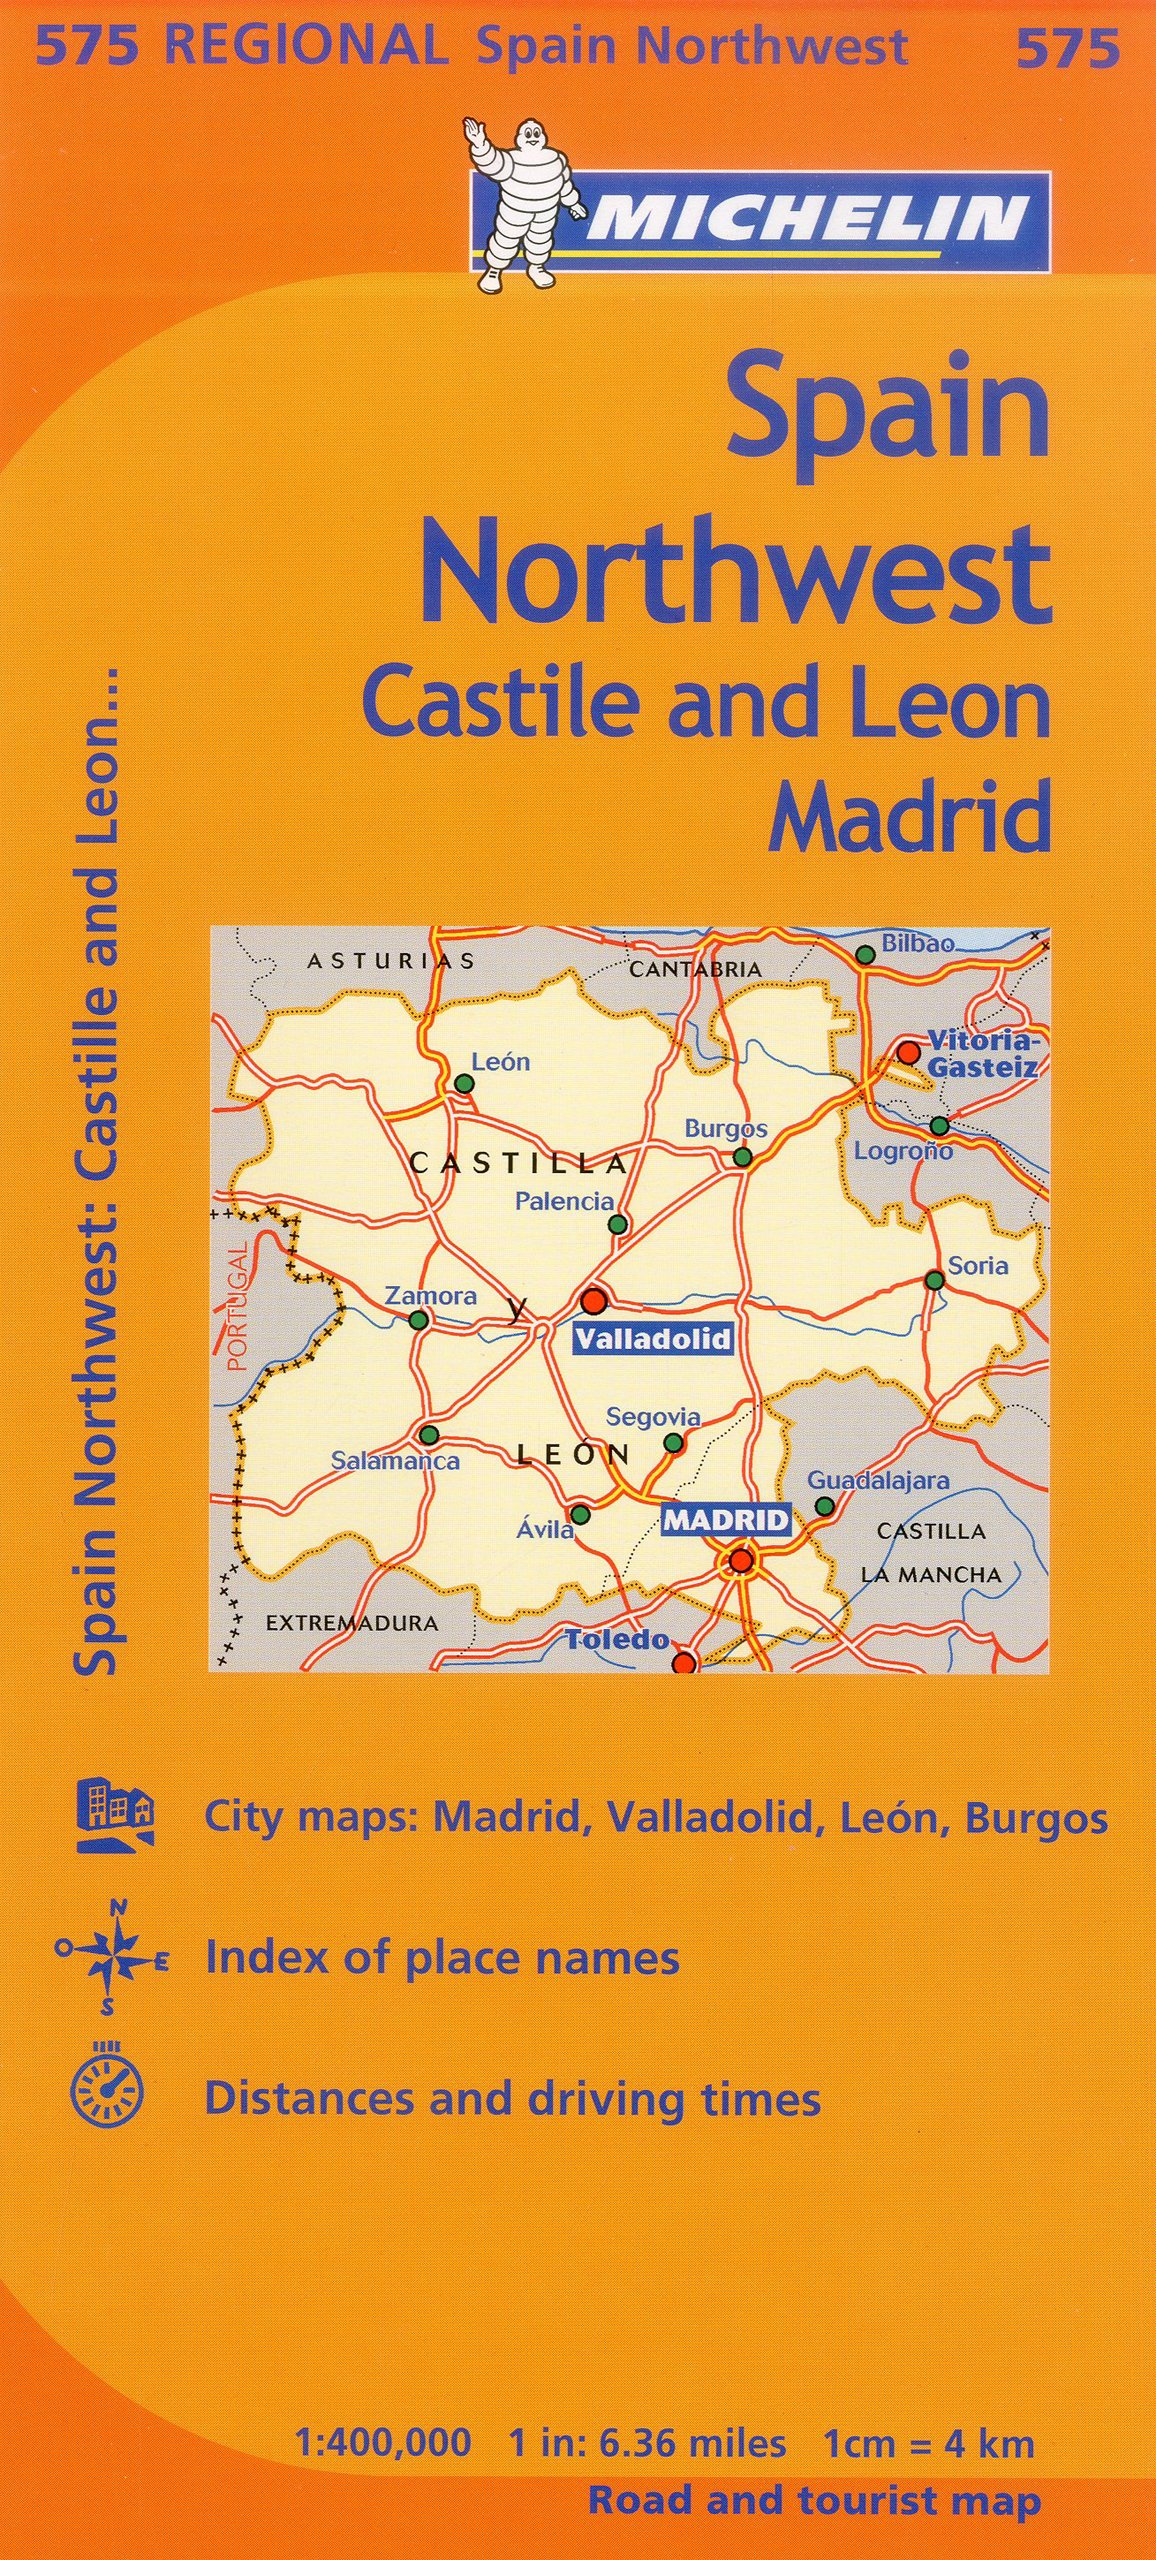 Madrid Map Of Spain.Michelin Spain Northwest Castilla Leon Madrid Map 575 Maps